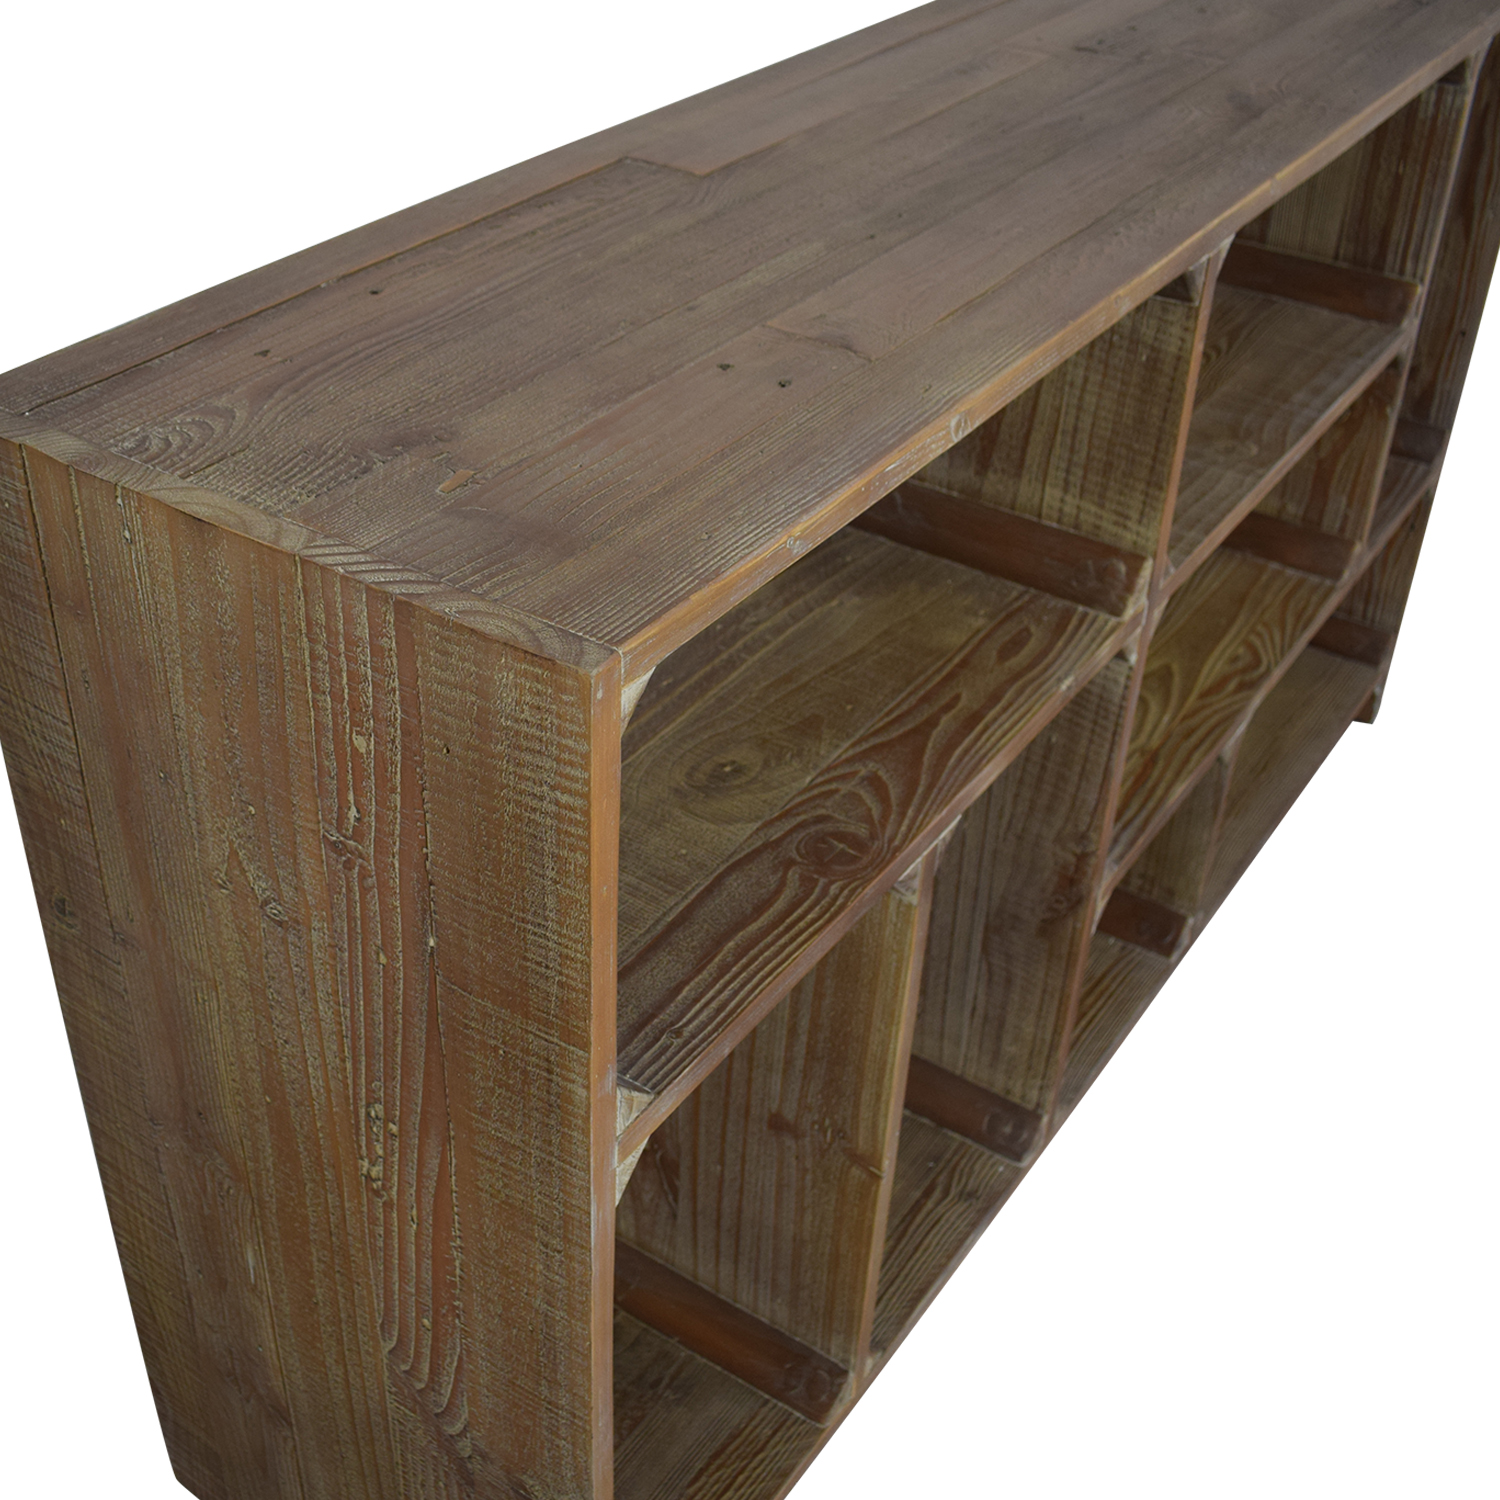 Restoration Hardware Restoration Hardware Reclaimed Pine Low Bookcase dimensions